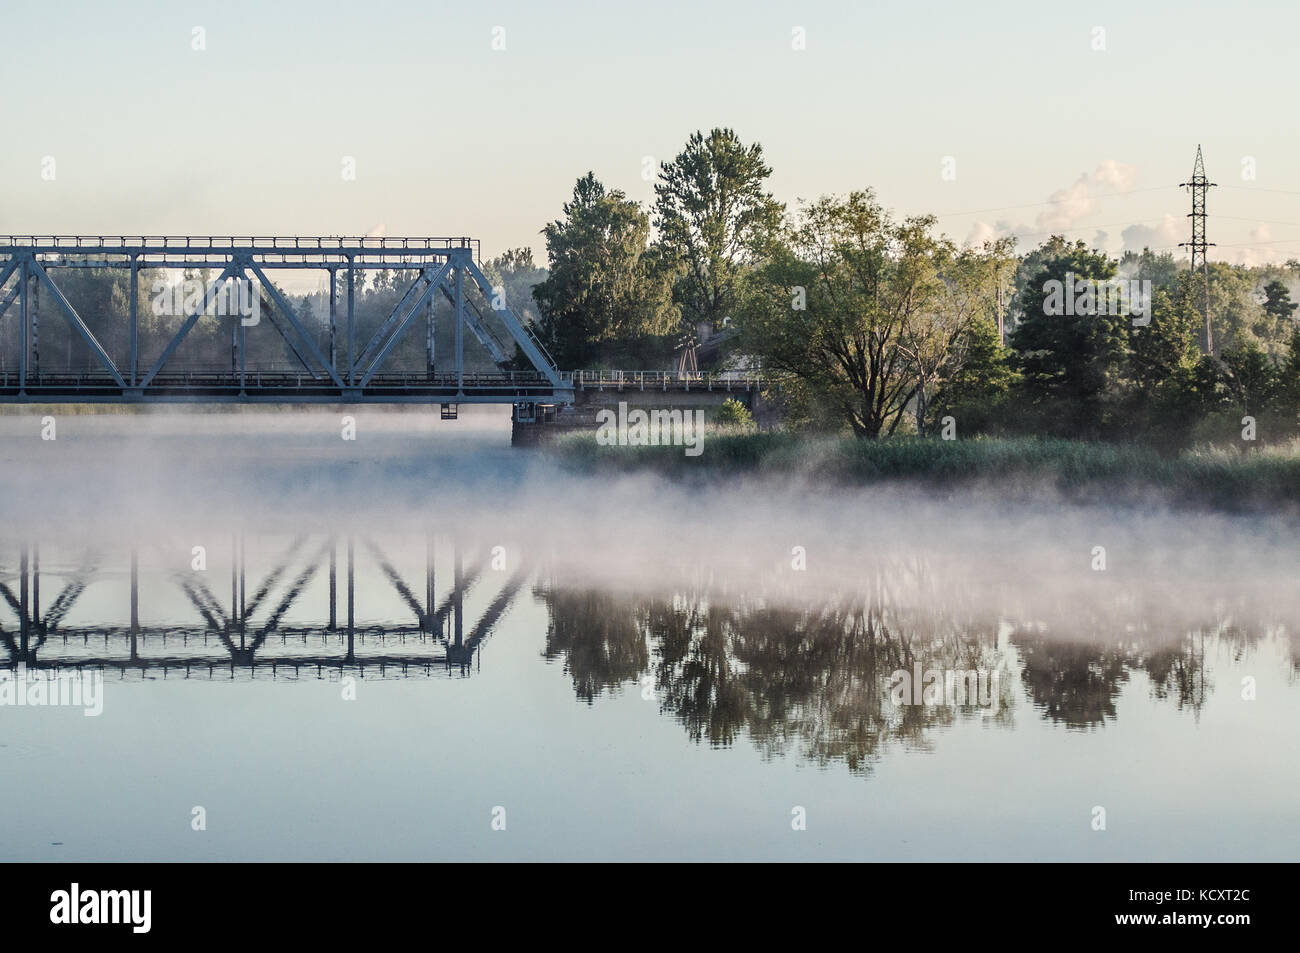 Railway bridge above misty lake. Reflection on water surface. - Stock Image